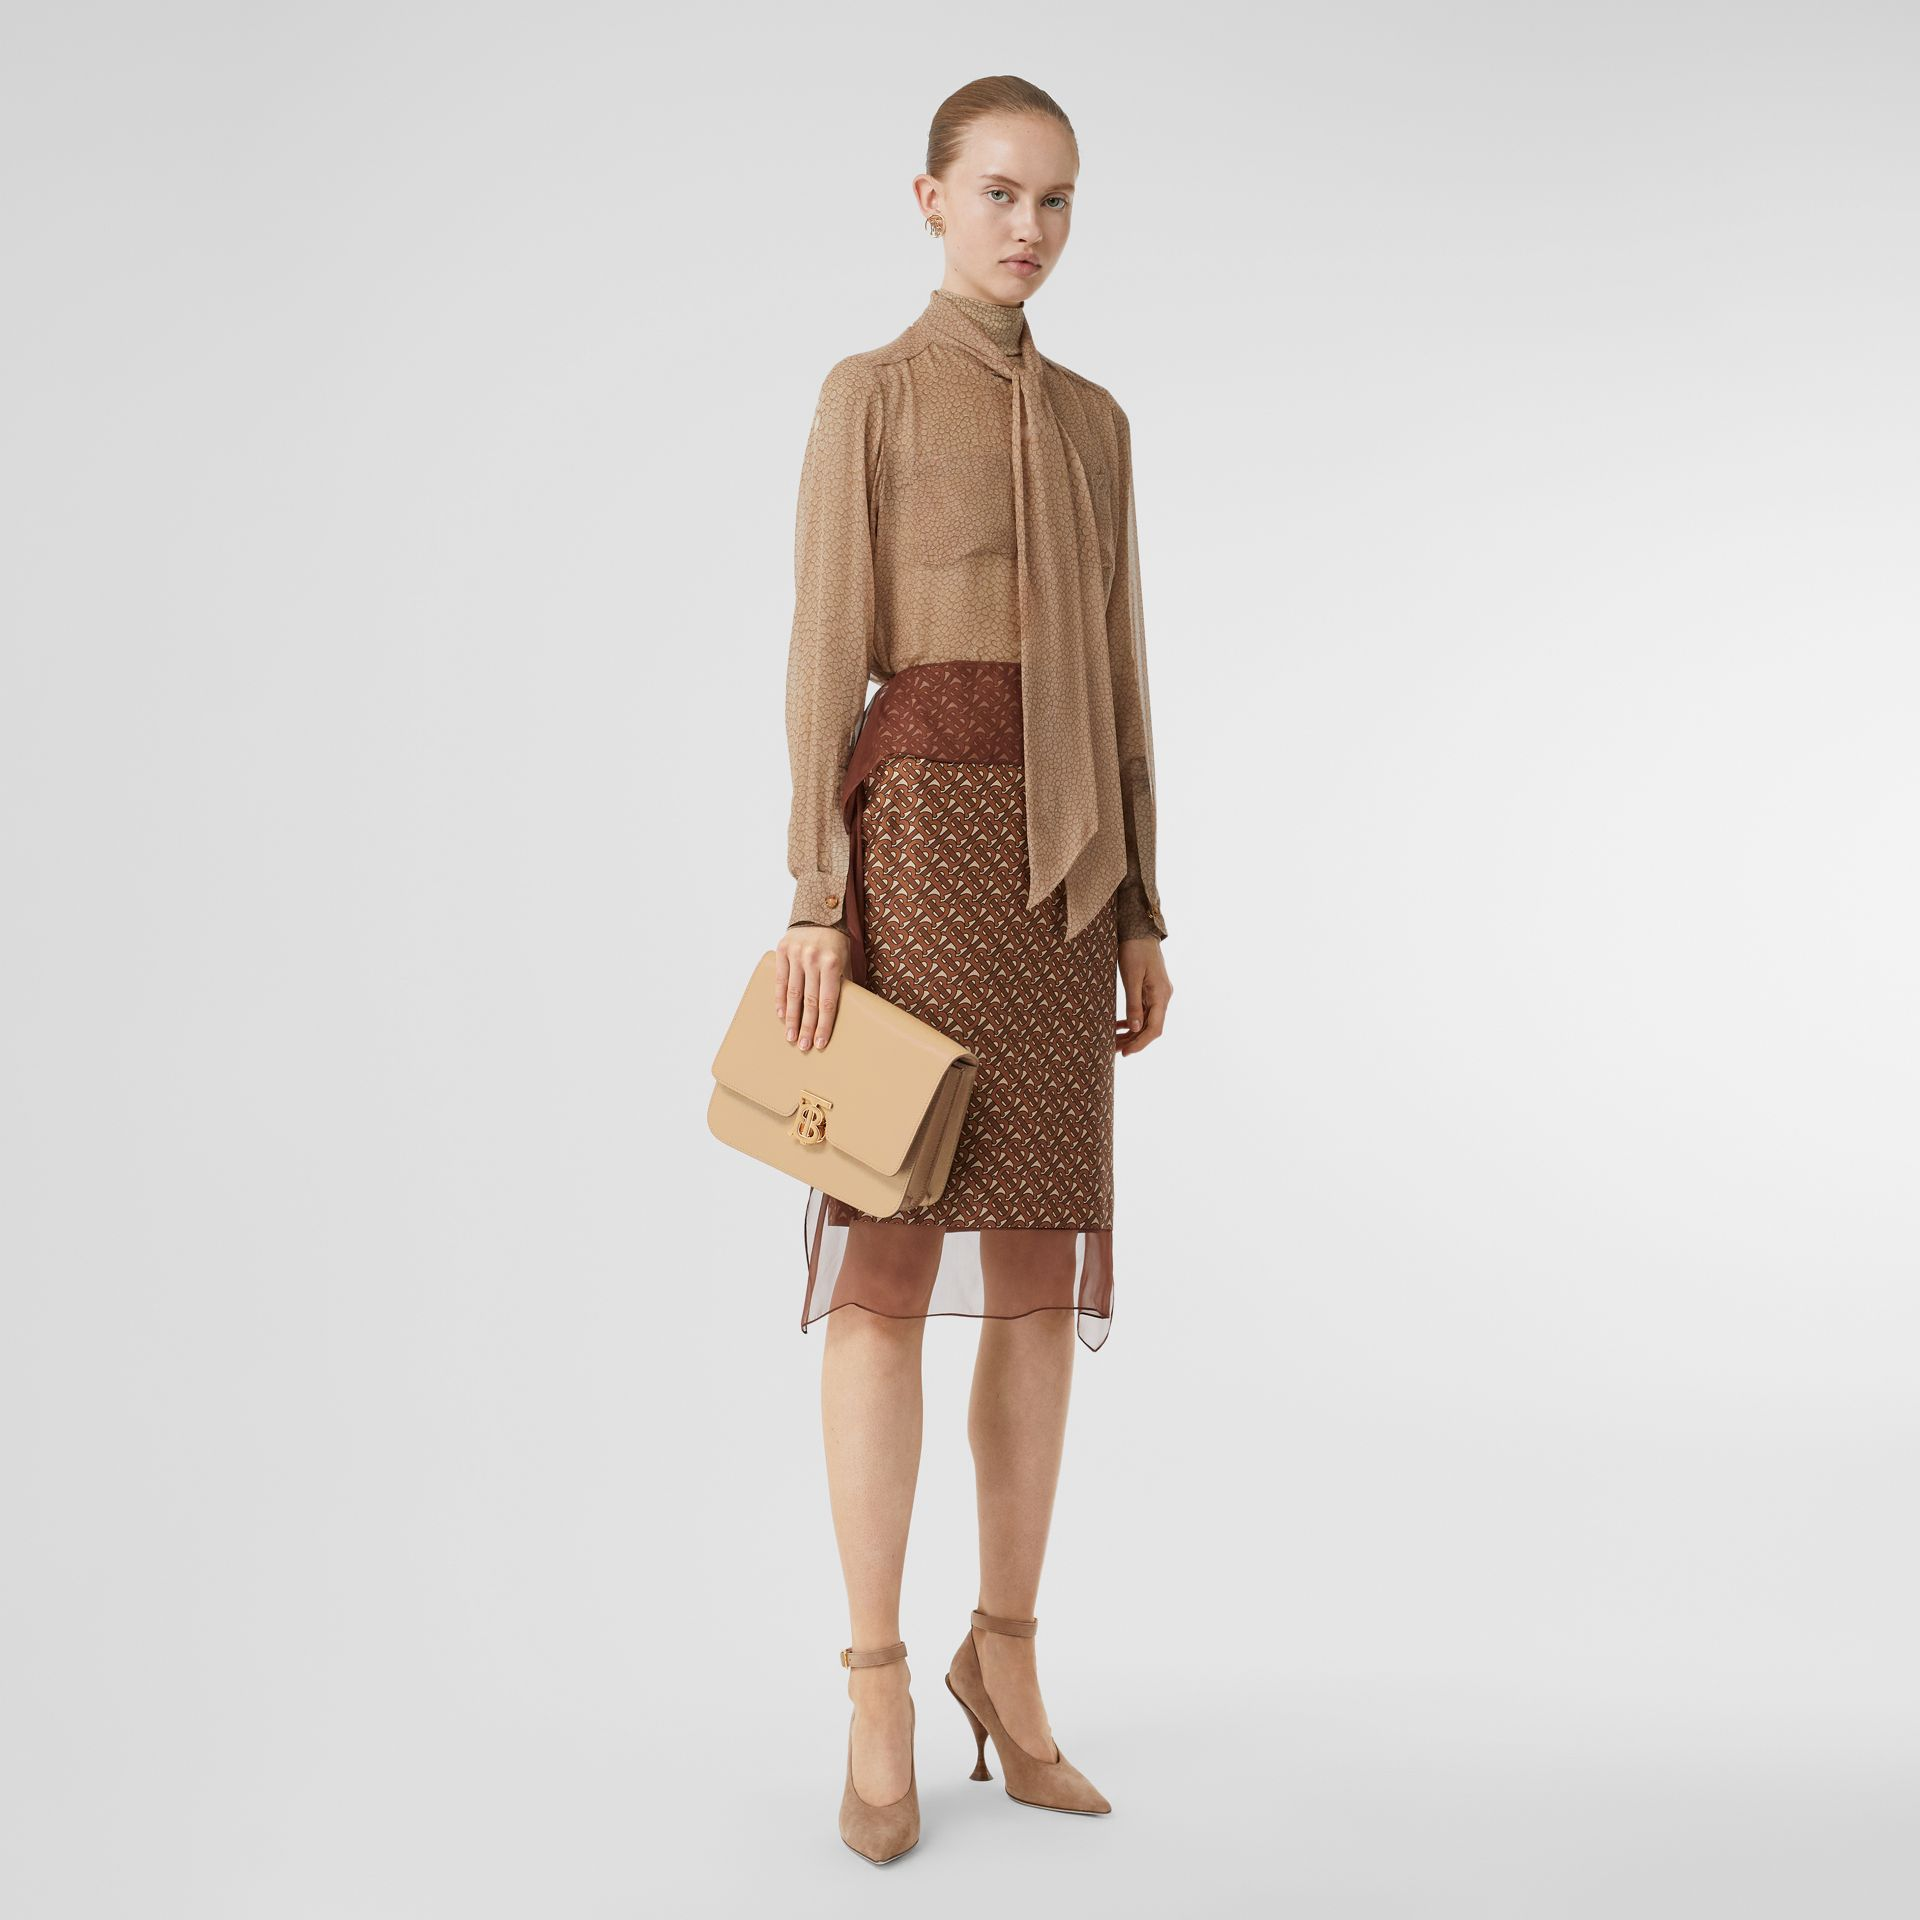 Medium Grainy Leather TB Bag in Archive Beige - Women | Burberry Australia - gallery image 5